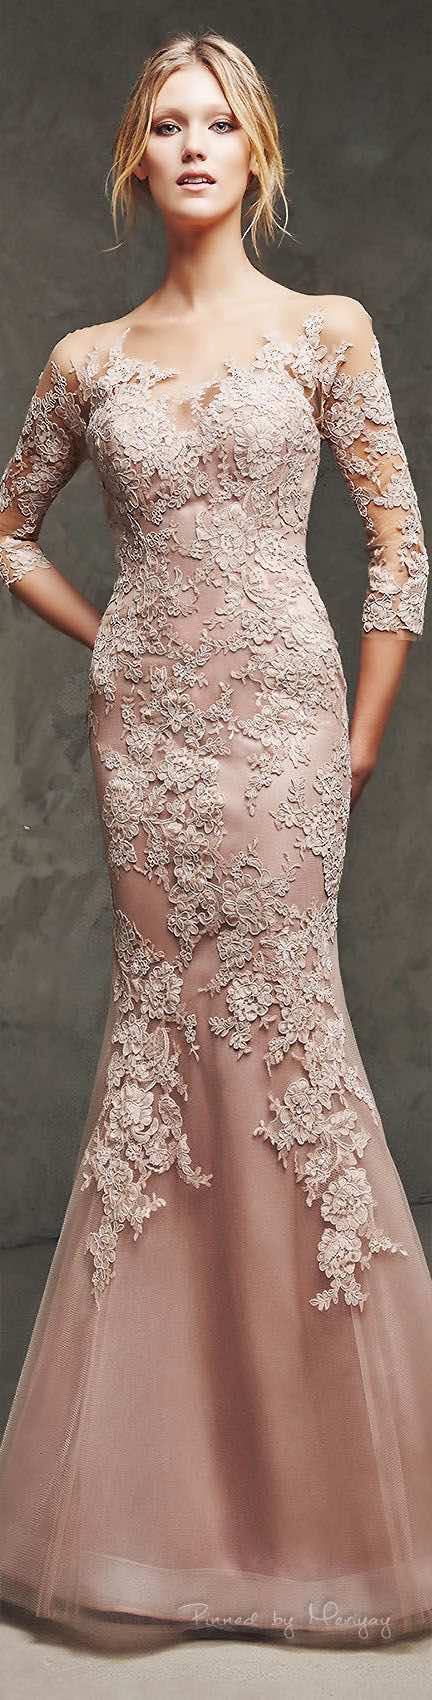 Pronovias 2016 blush wedding dress. Love the lace detail!